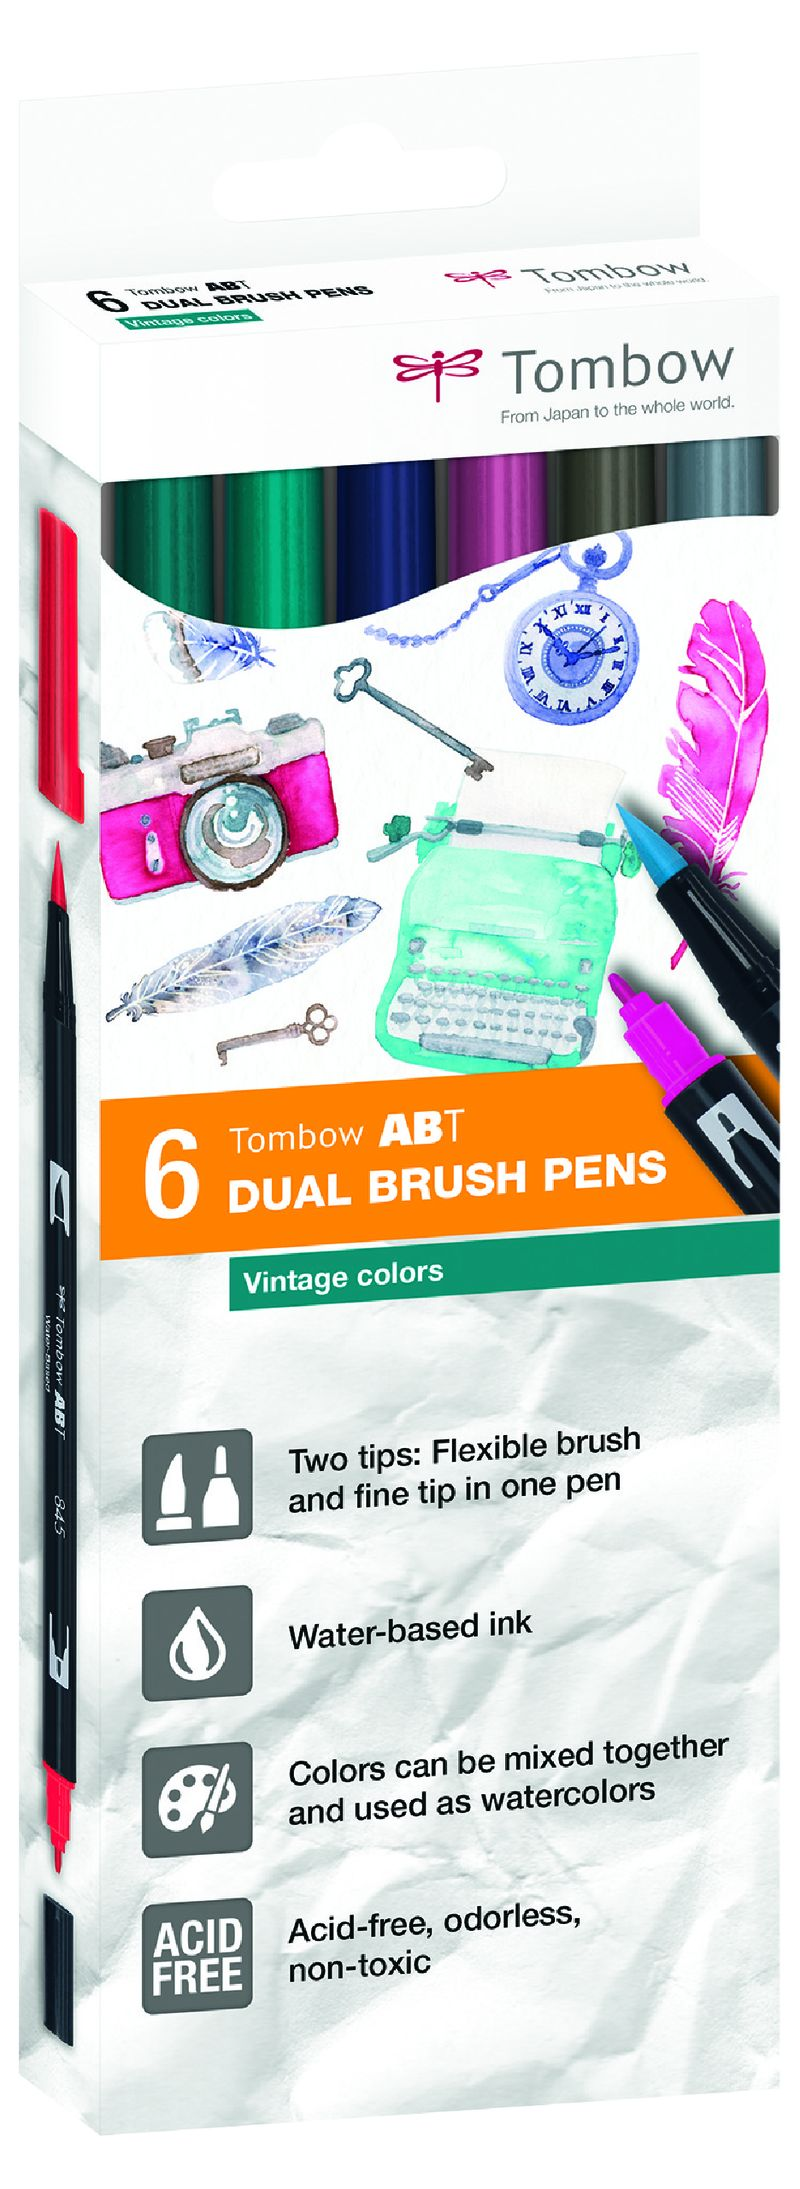 EST.6 DUAL BRUSH ROTULADORES PINCEL